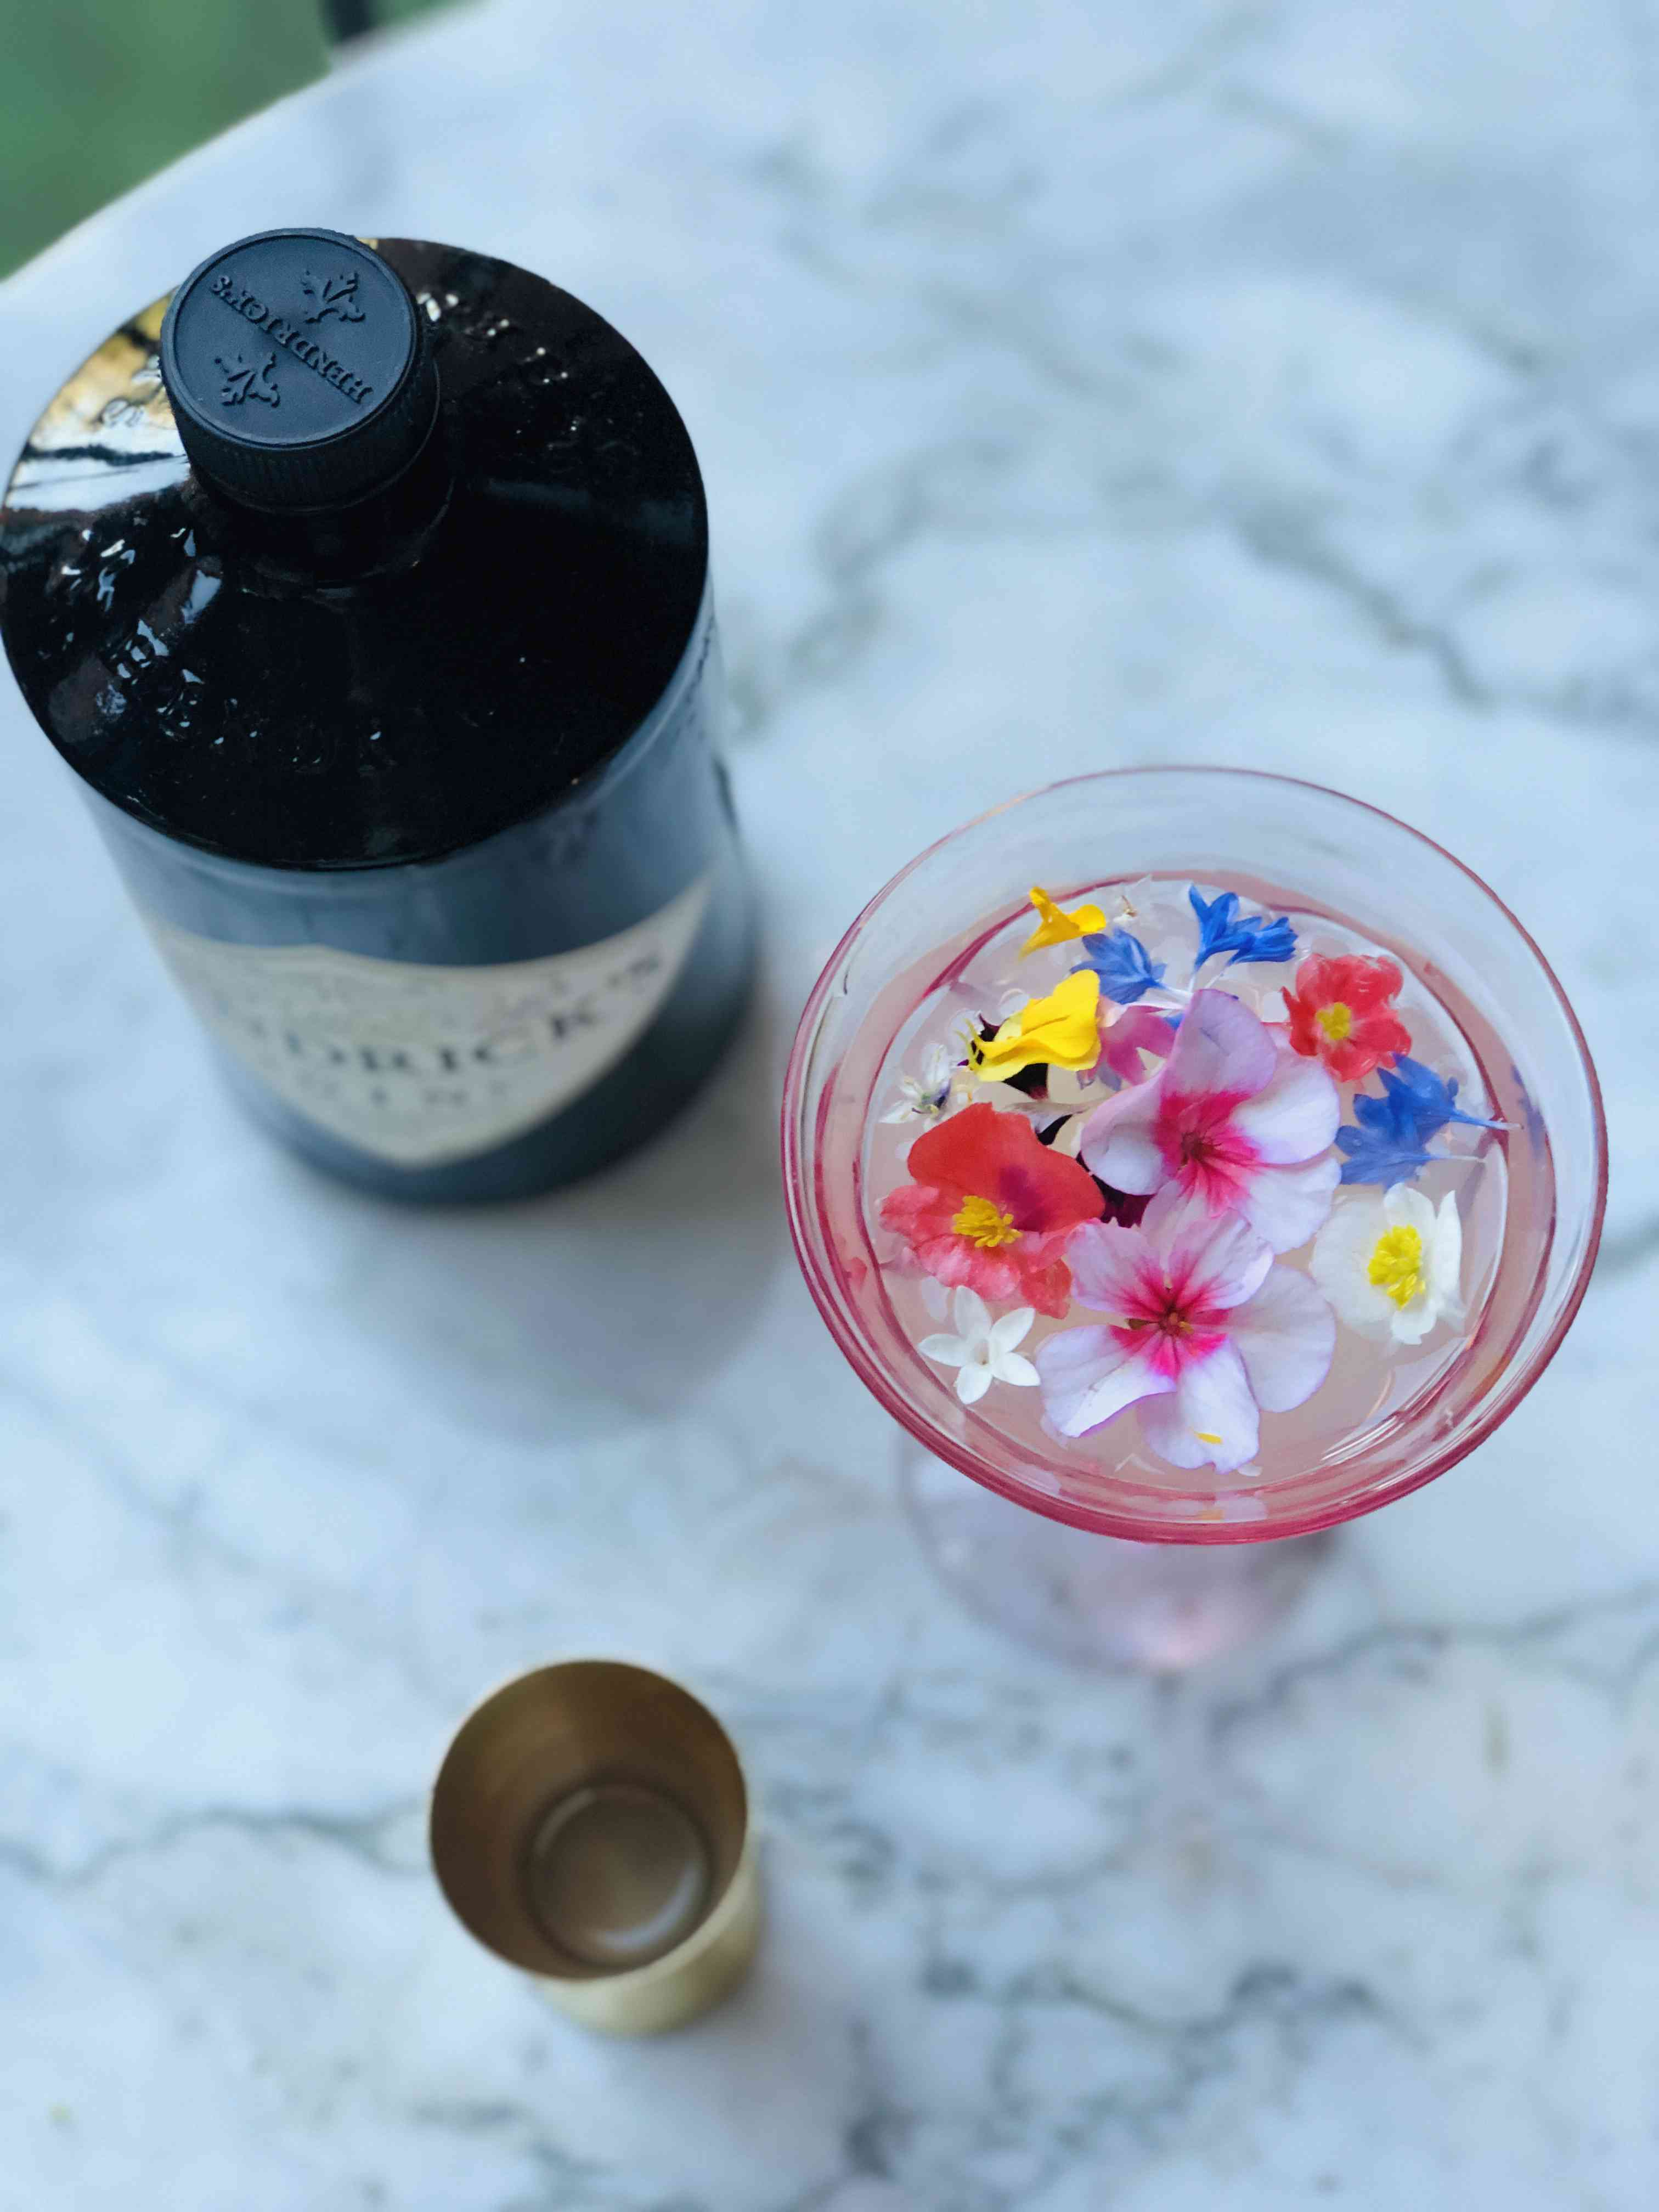 Close-up on drink with edible flowers.